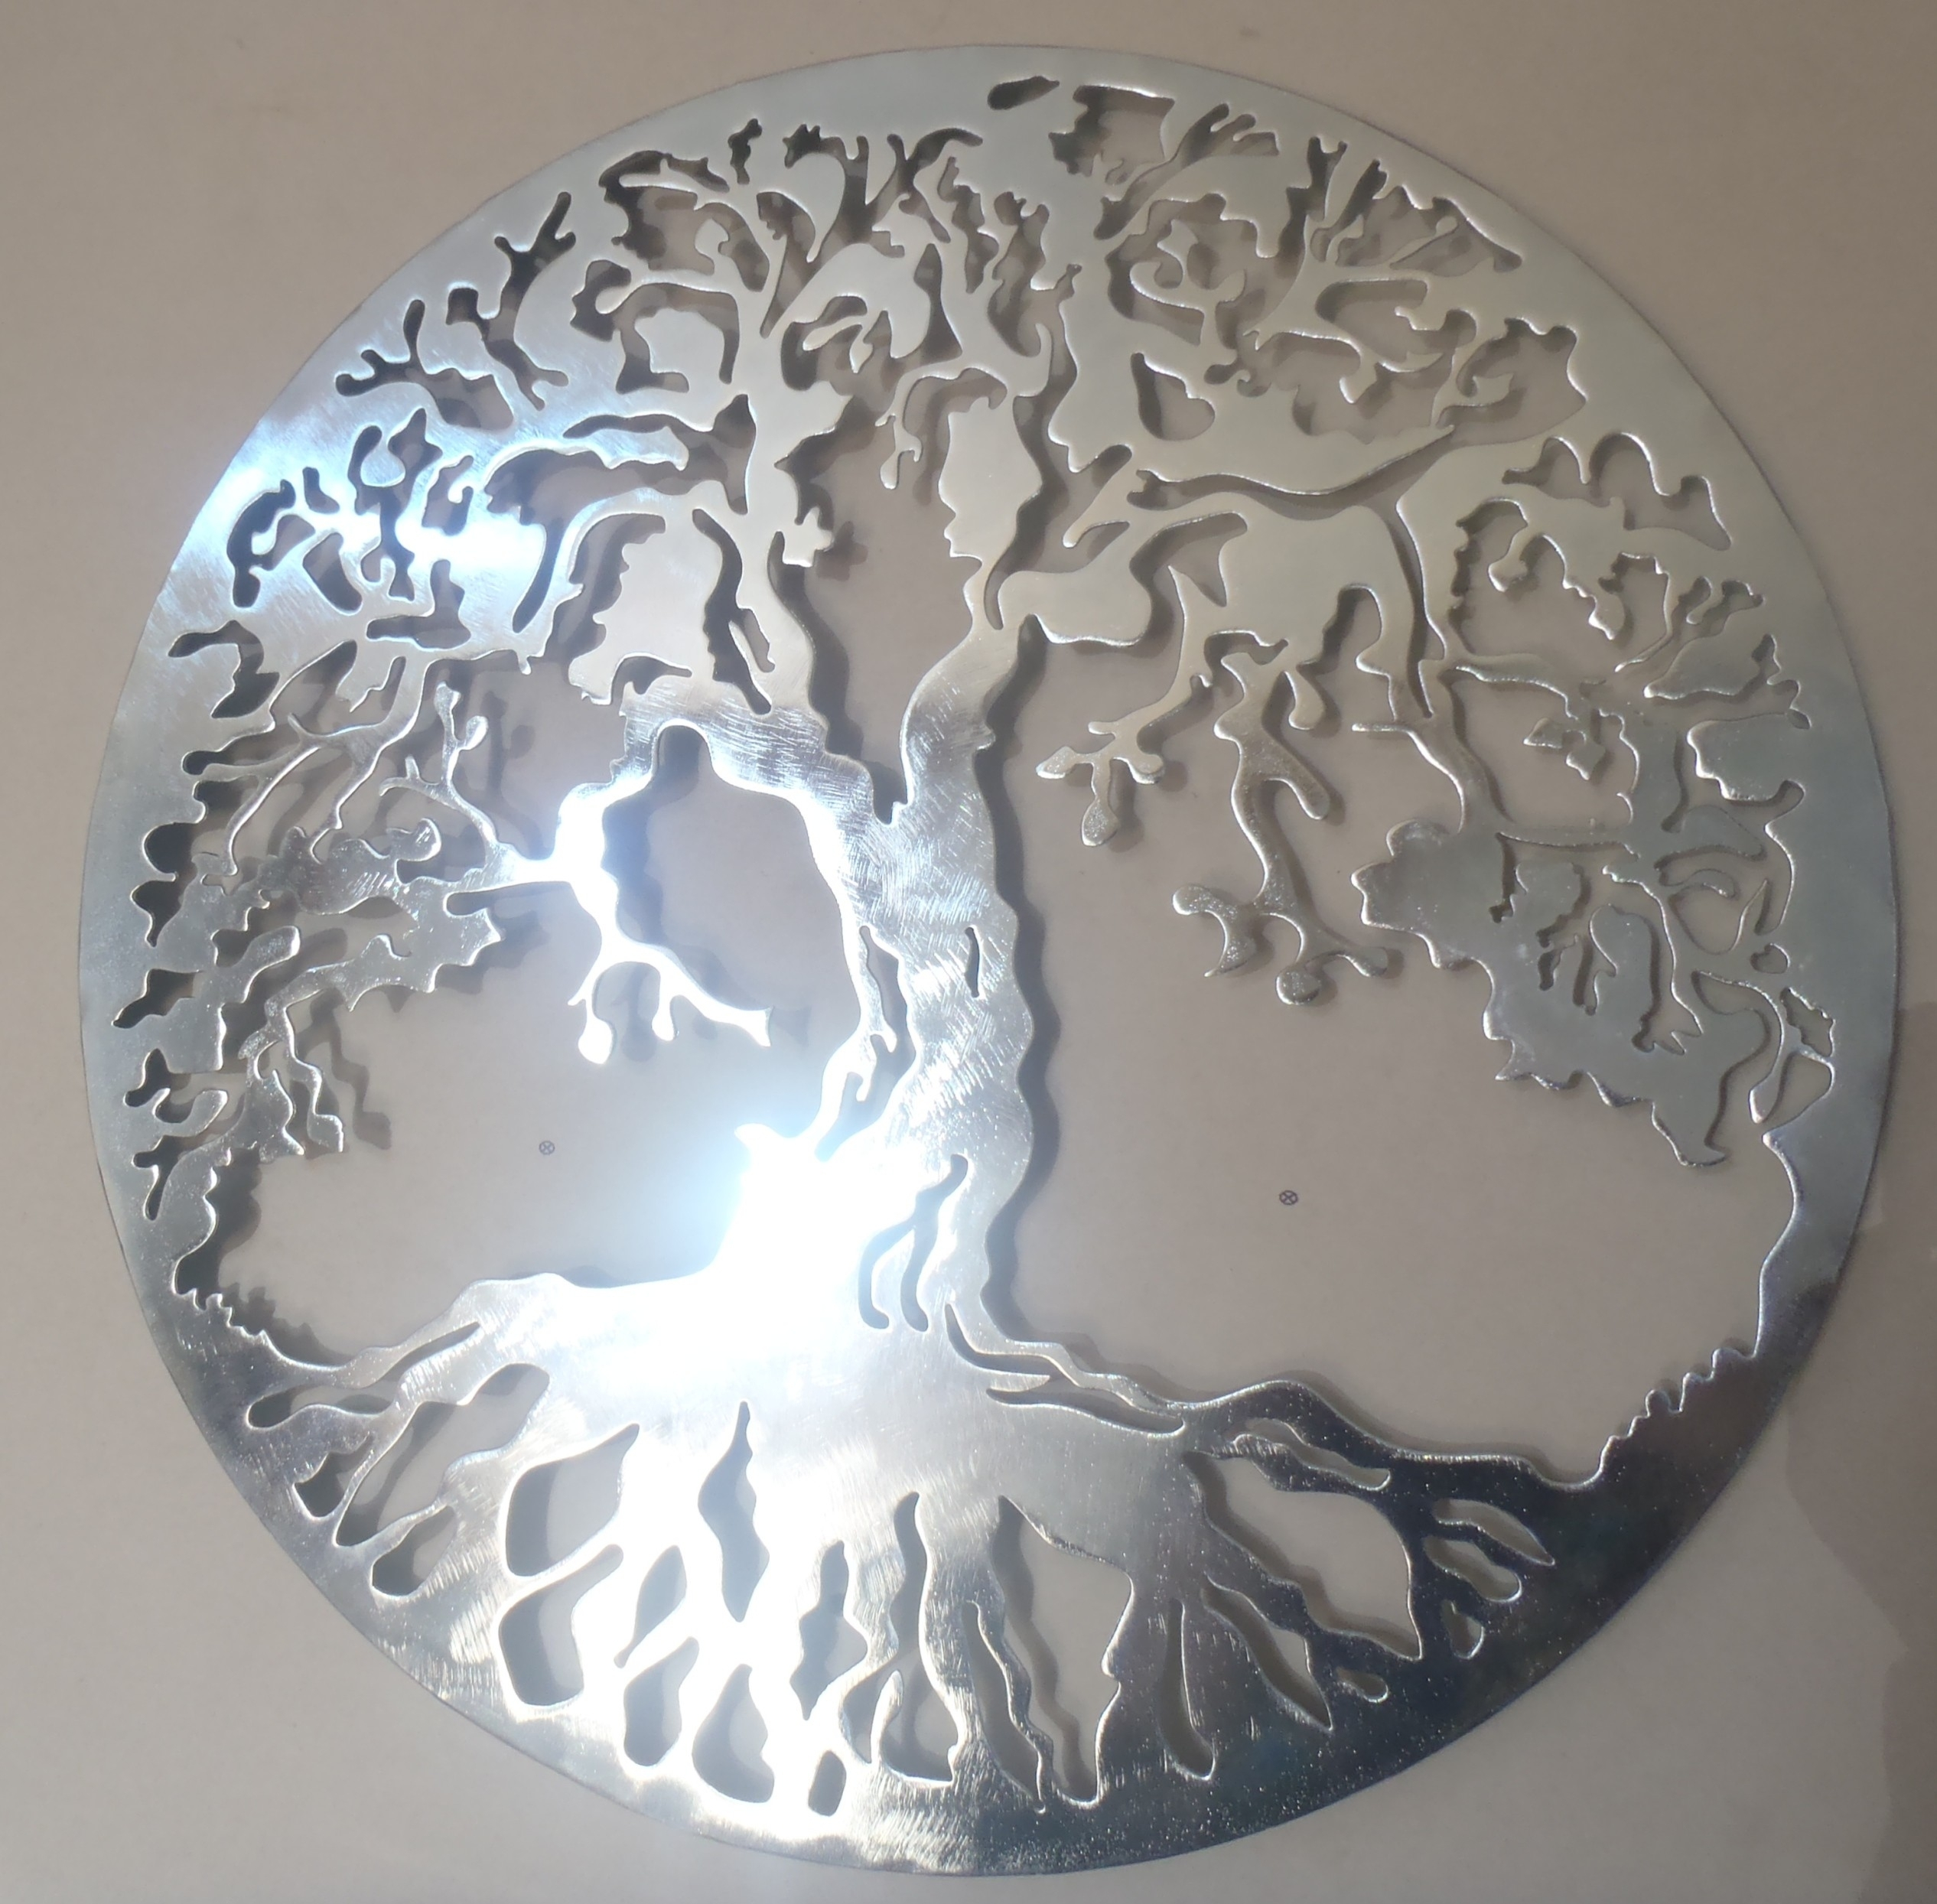 28 Silver Metal Wall Art, Wall Art Ideas Design : Abstract Pattern Intended For Current Silver Wall Art (View 1 of 20)